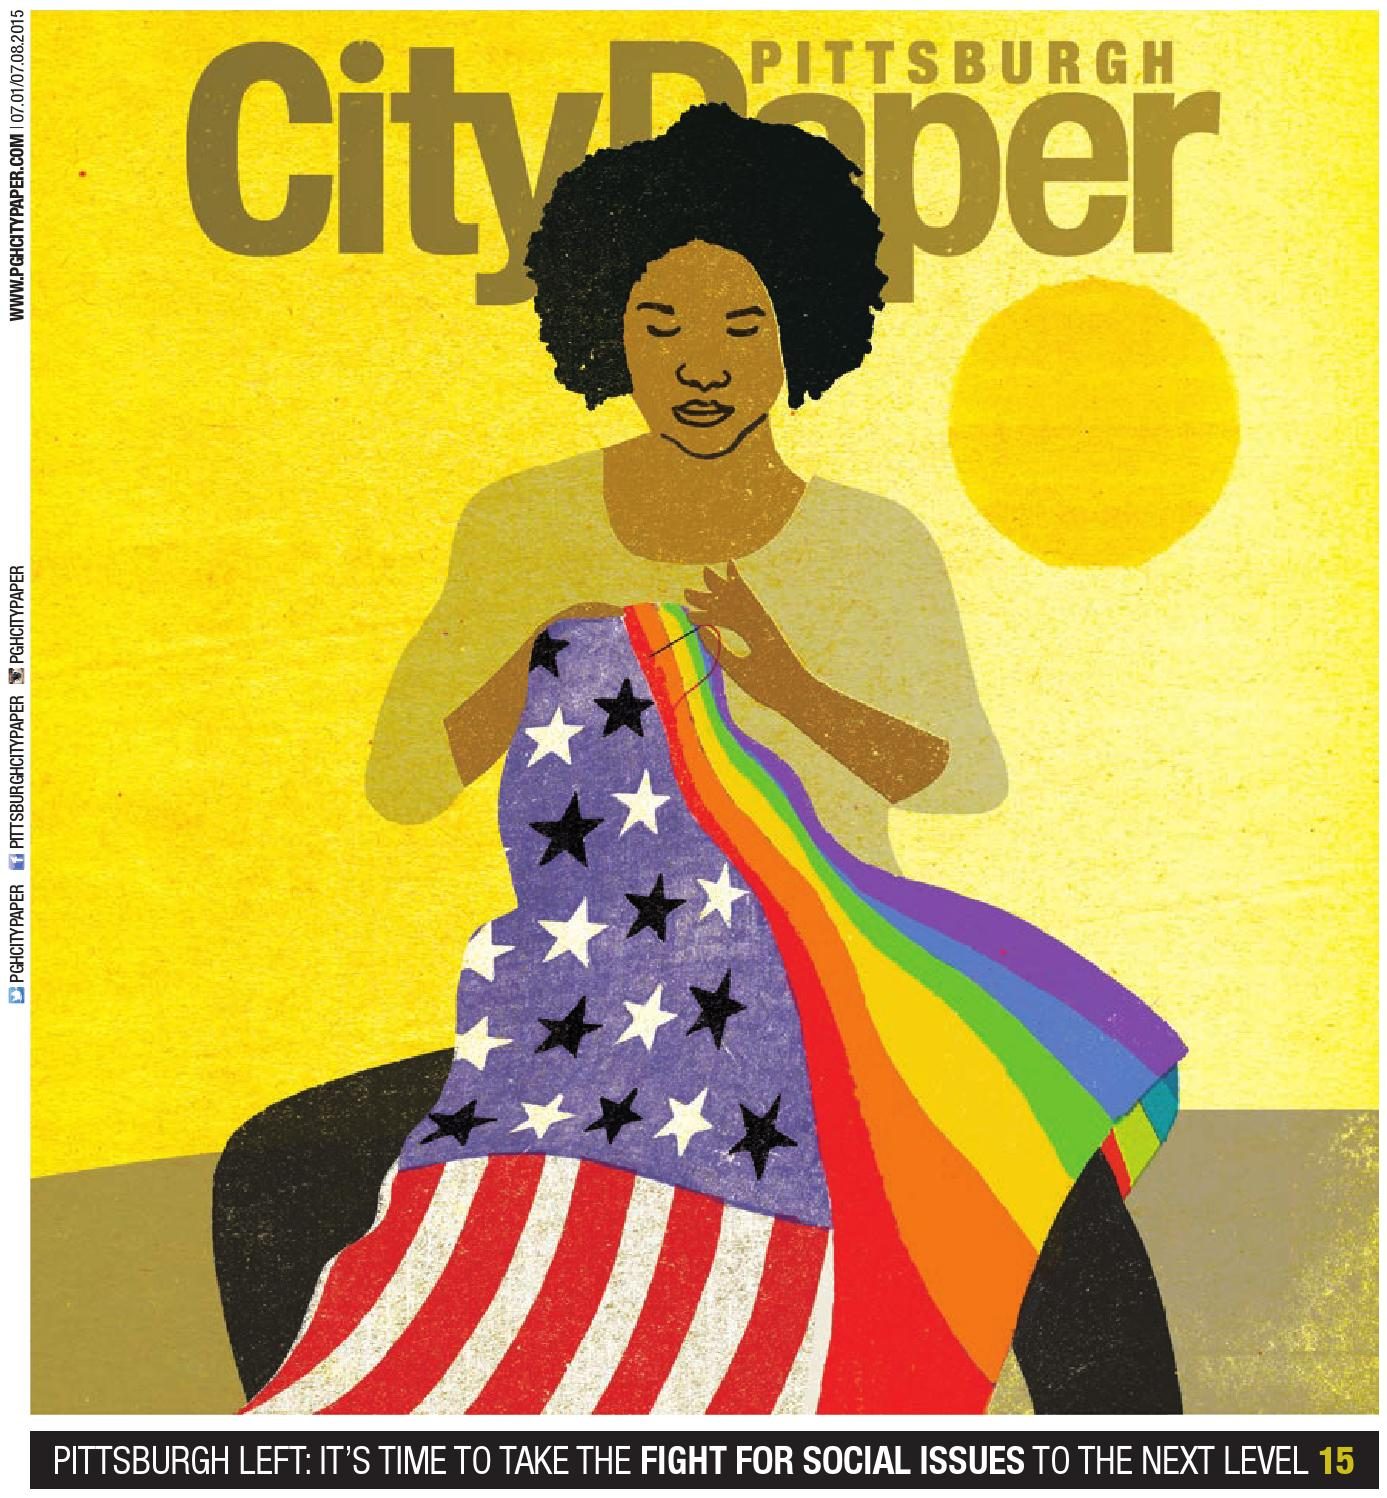 July 1, 2015 by Pittsburgh City Paper - issuu